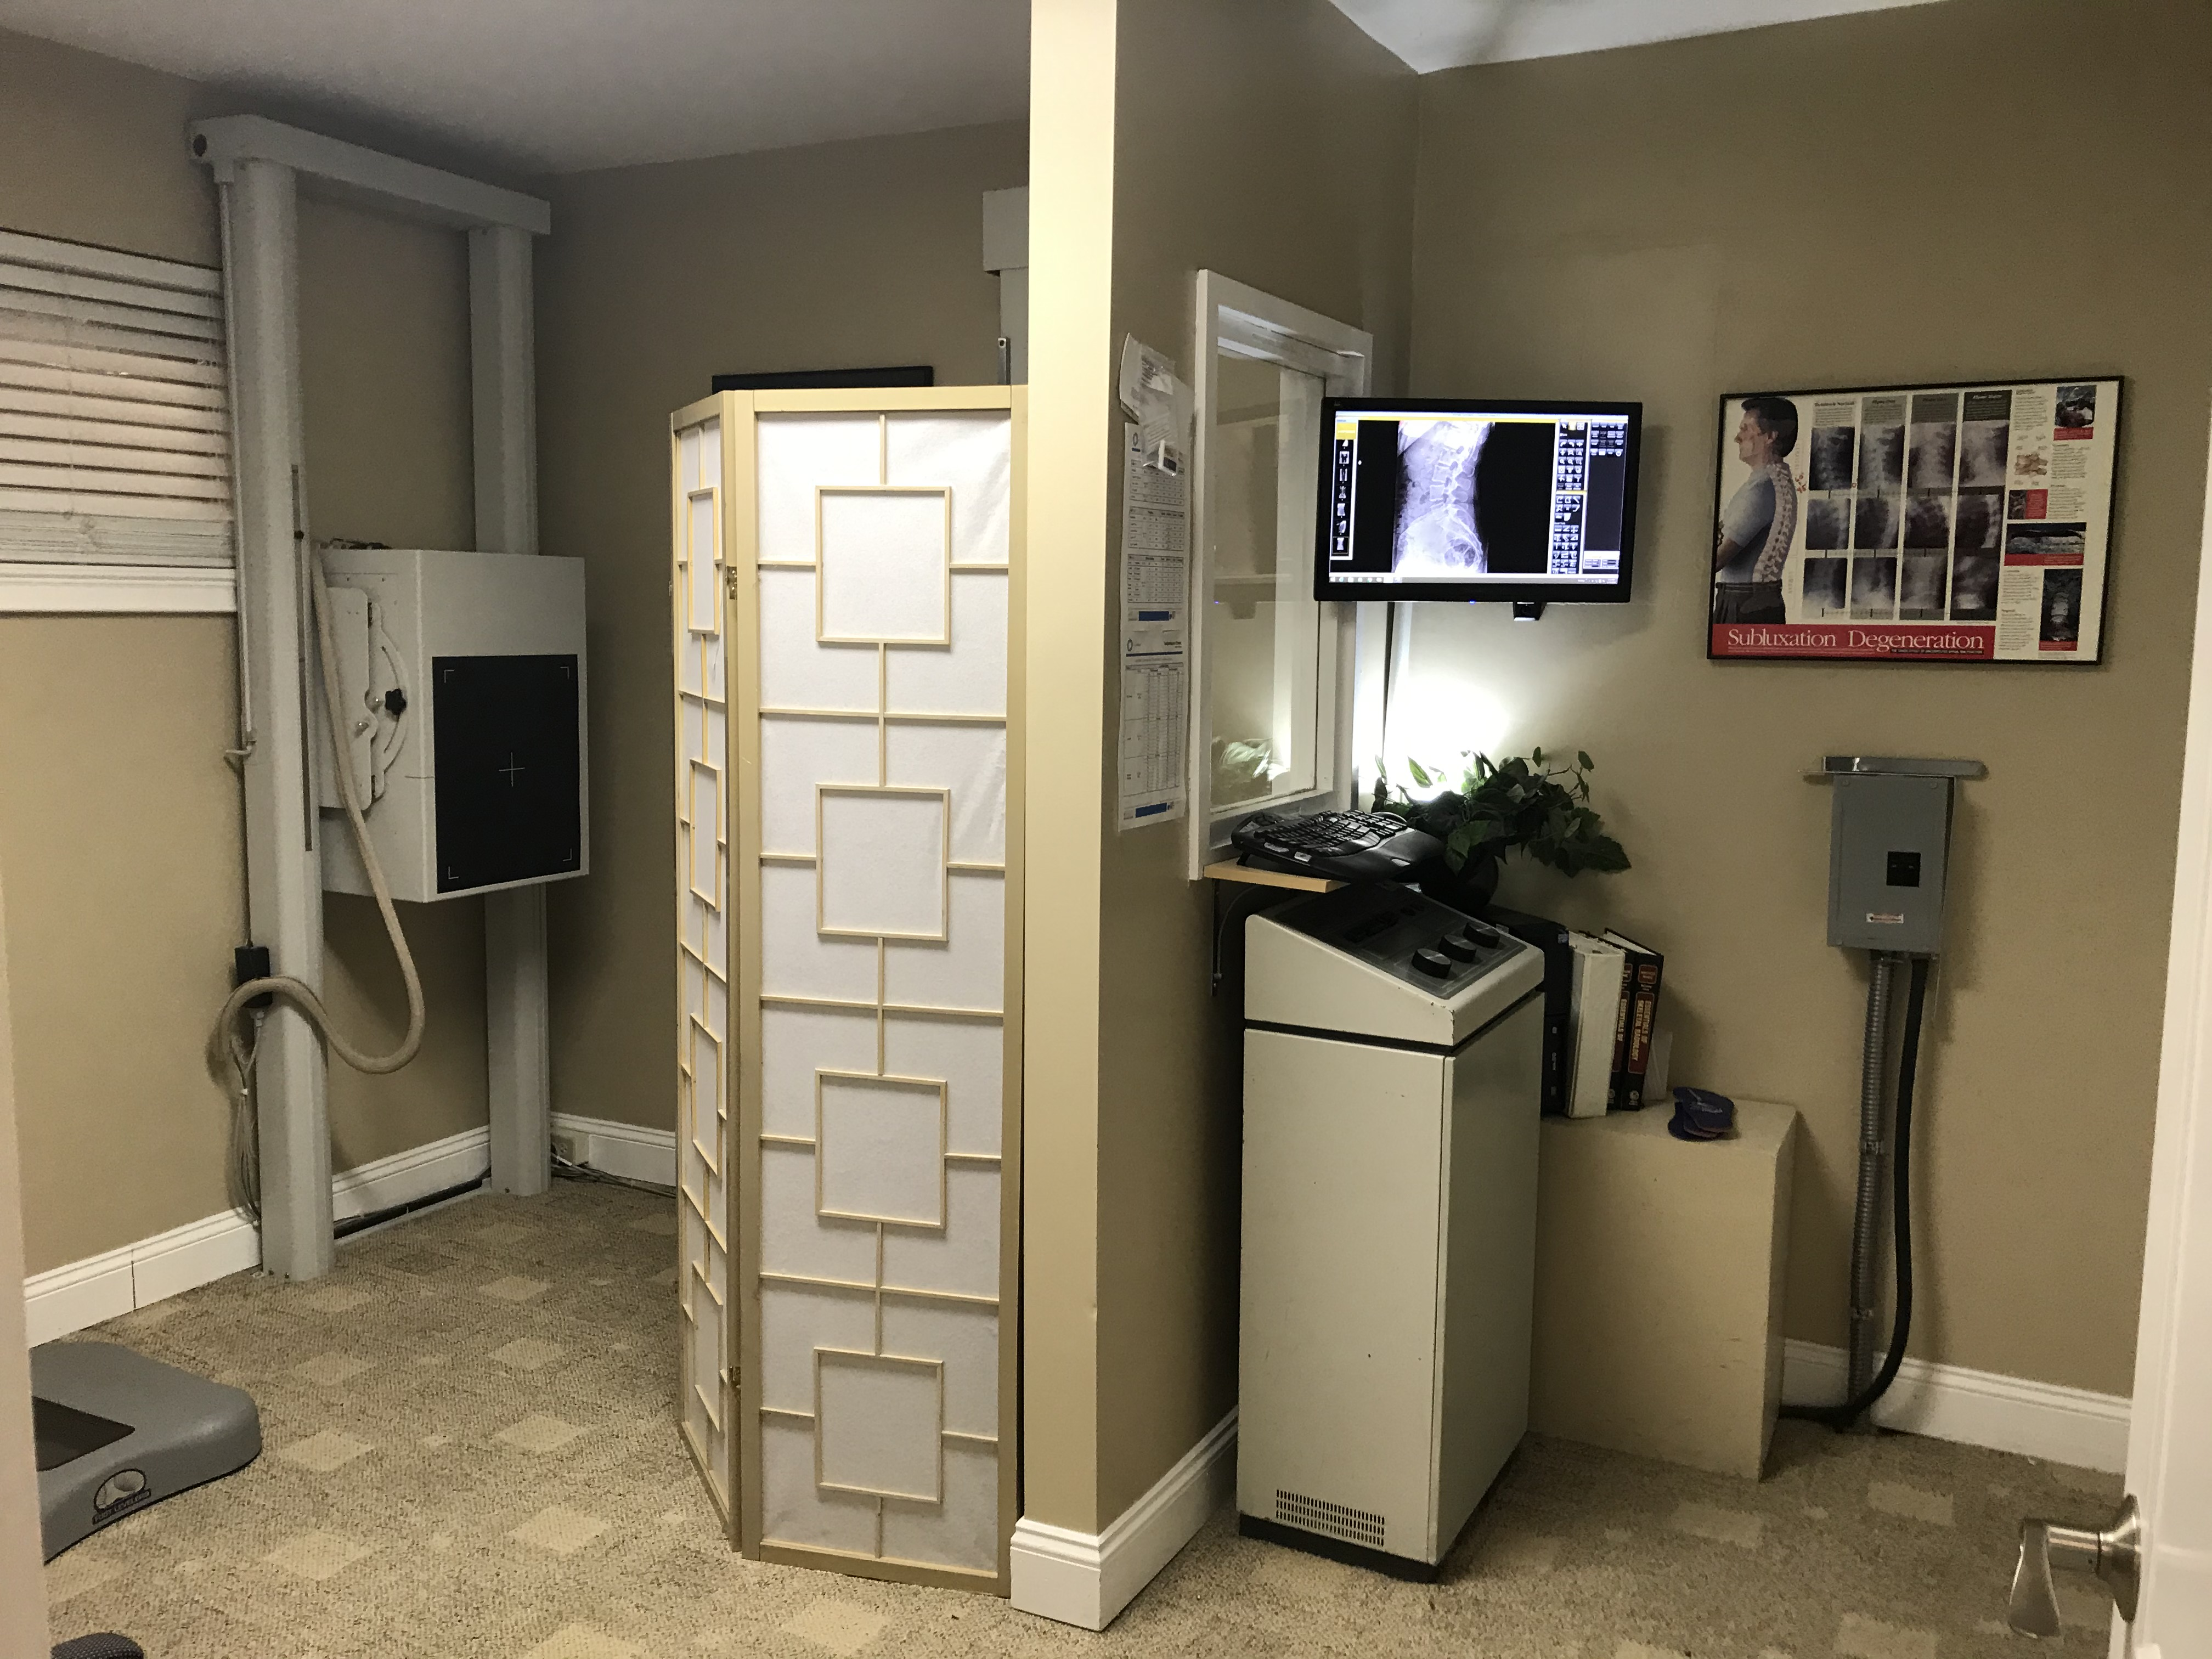 The Doctors Wellness Group Digit Xray and Exam Room